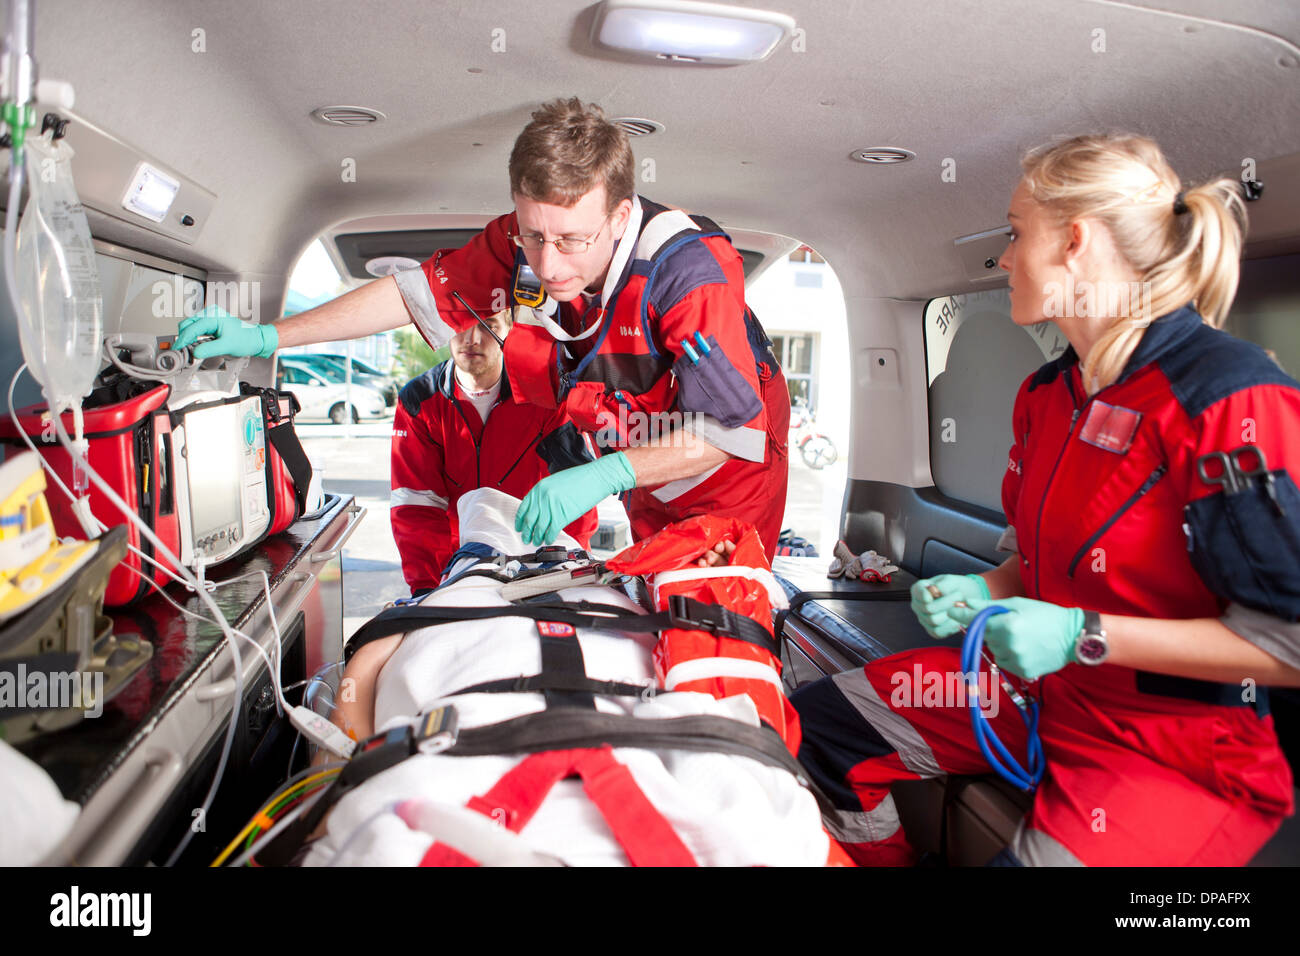 Paramedics checking patient in ambulance Stock Photo